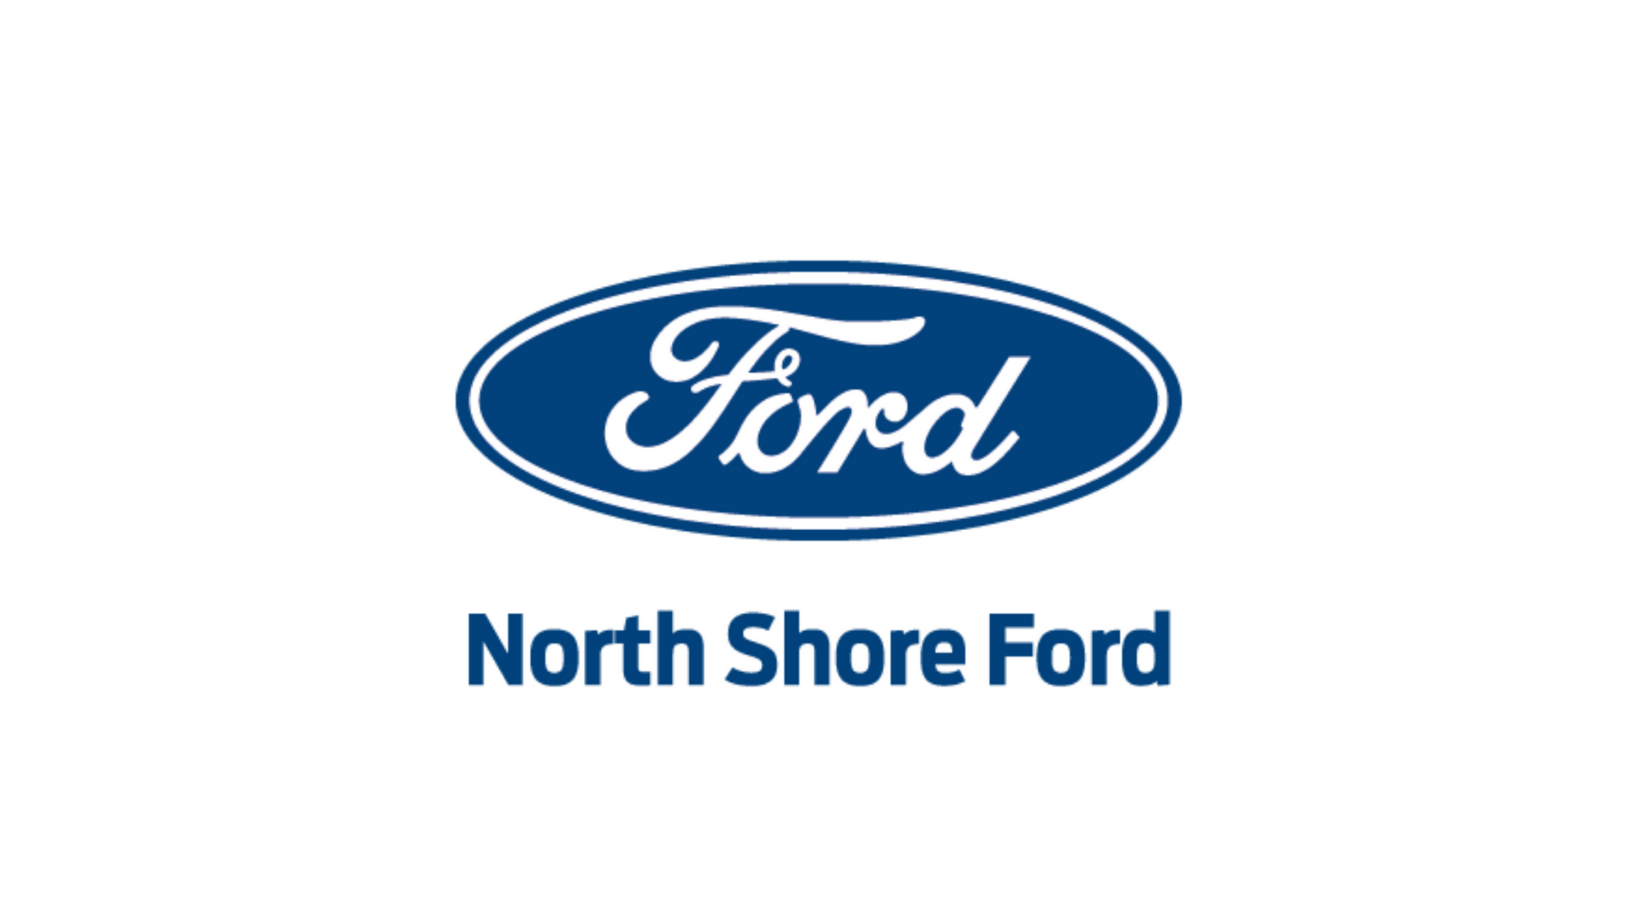 North Shore Ford